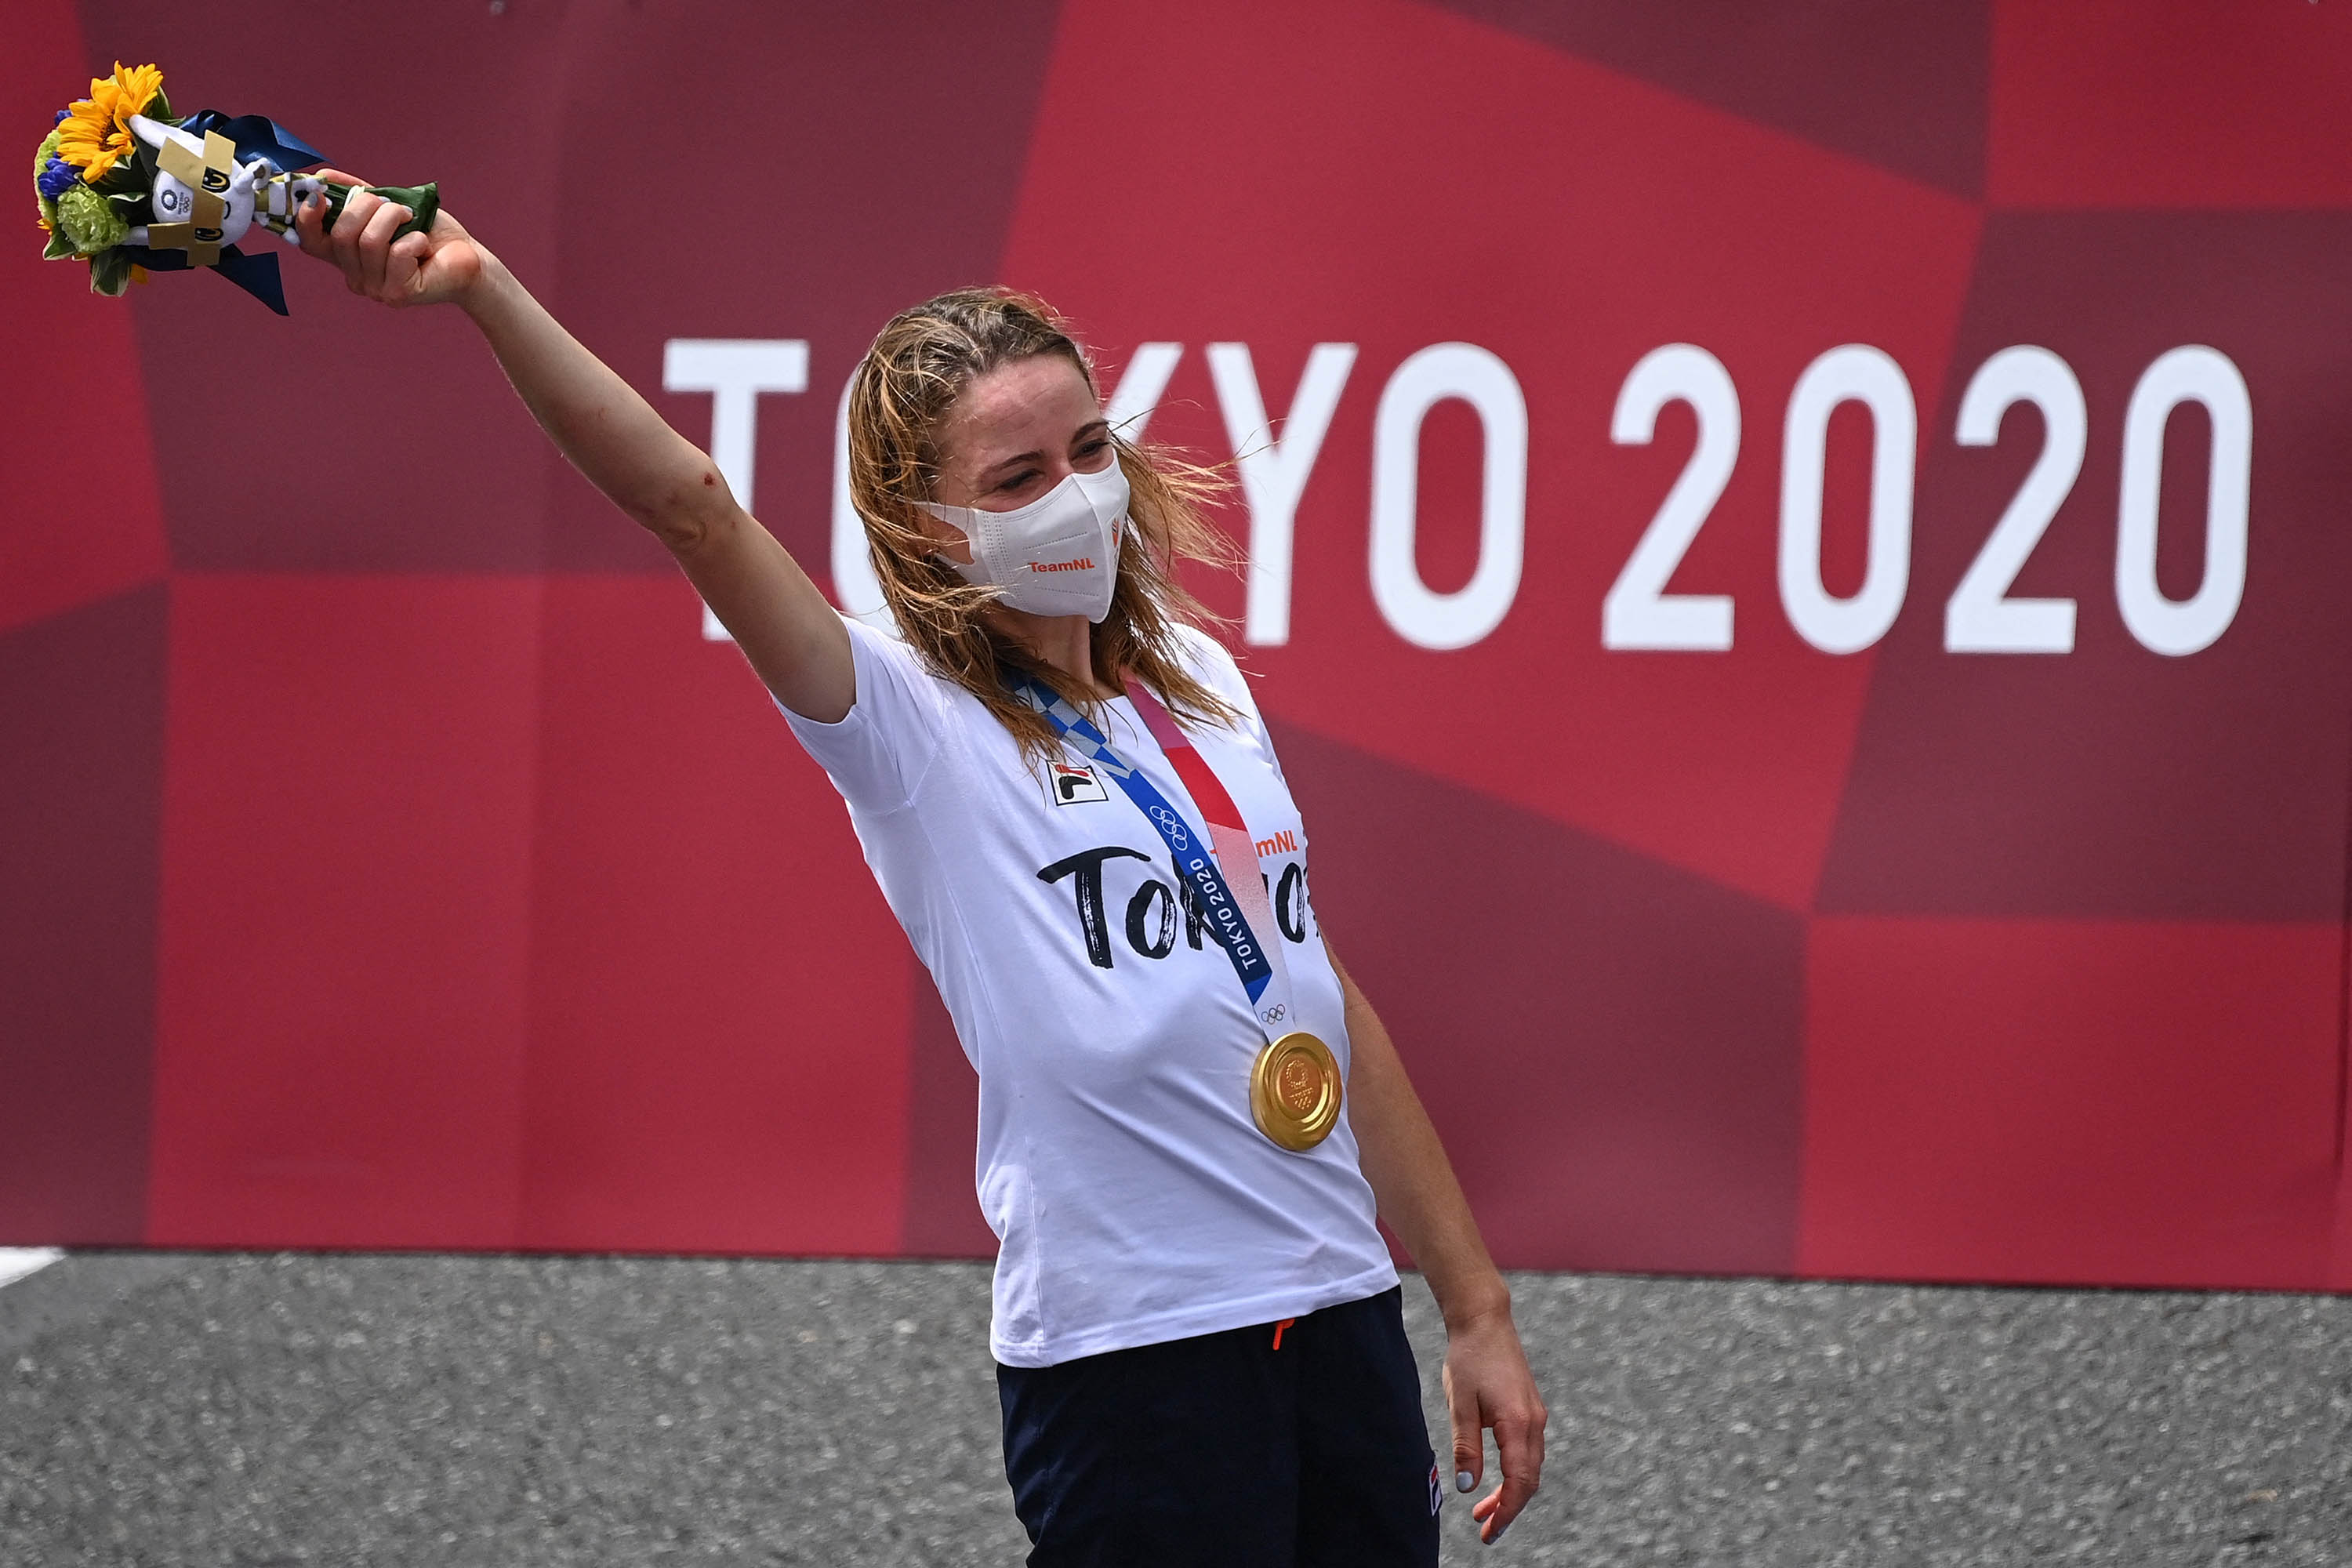 Gold medalist Annemiek Van Vleuten of The Nethterlands celebrates on the podium of the women's cycling road individual time trial in Oyama, Japan, on July 28.